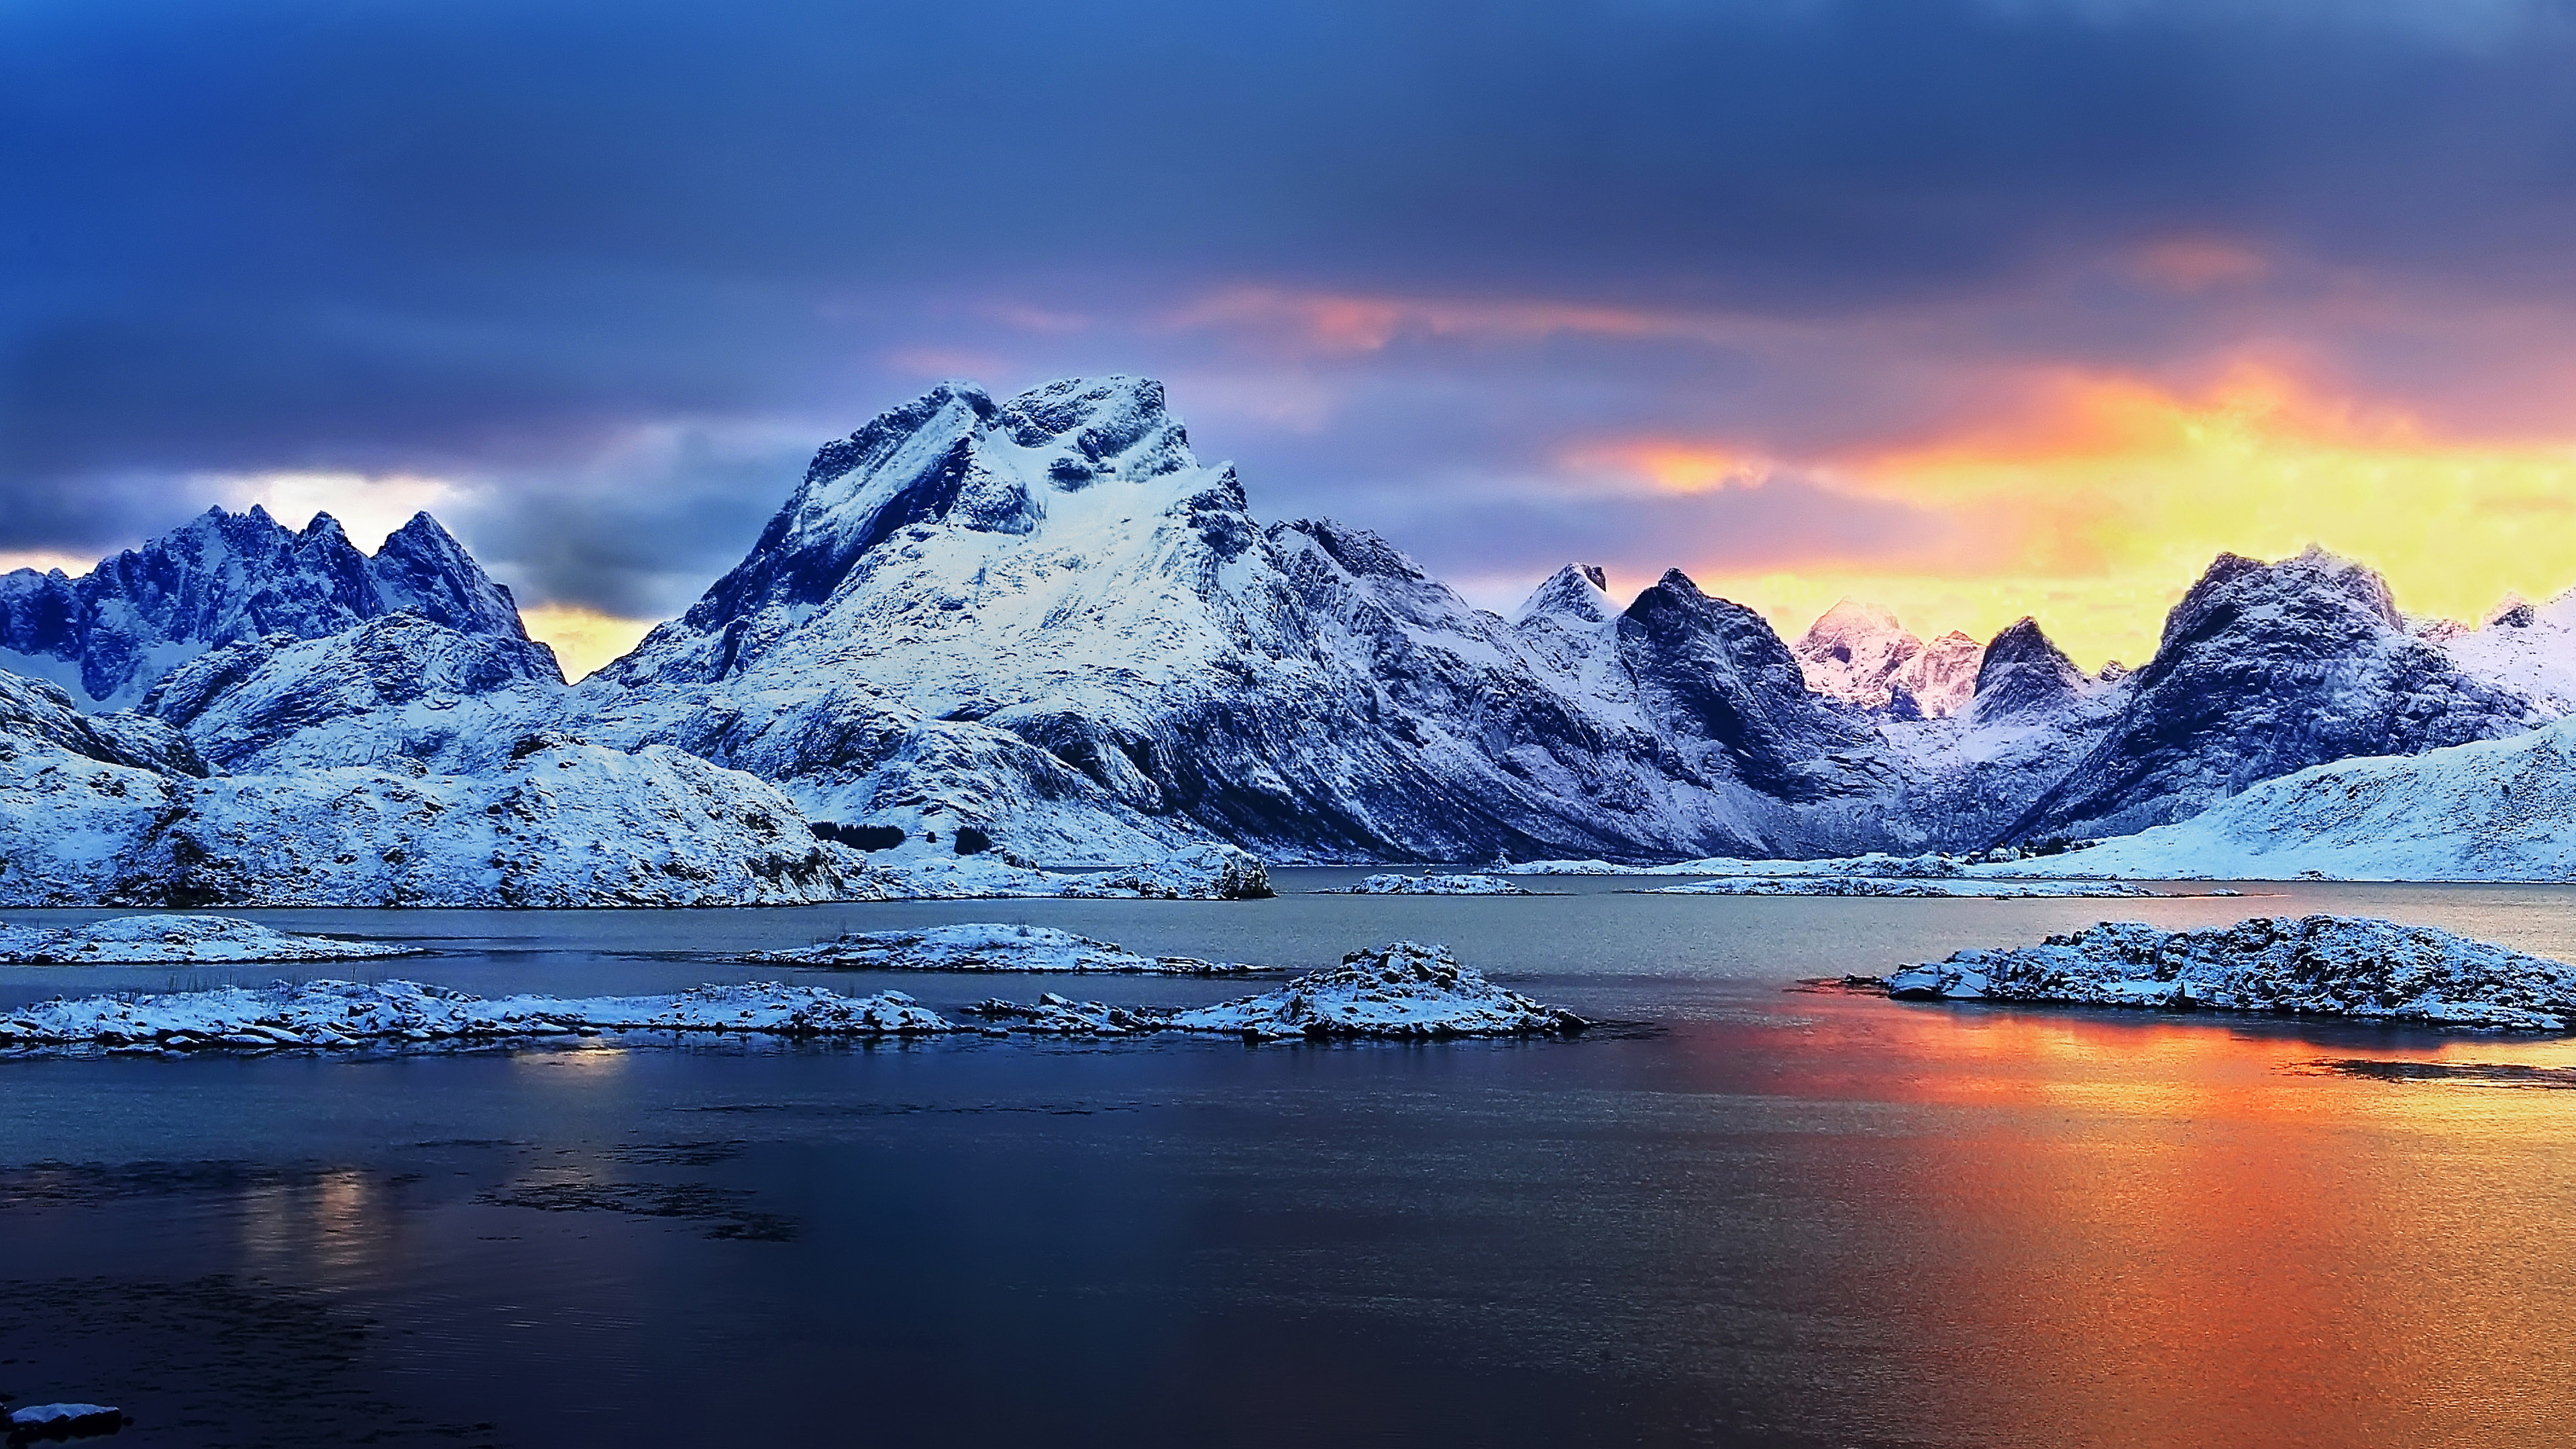 Animated Snow Wallpaper Norway Sunset Snowy Mountains Winter Landscape Hd